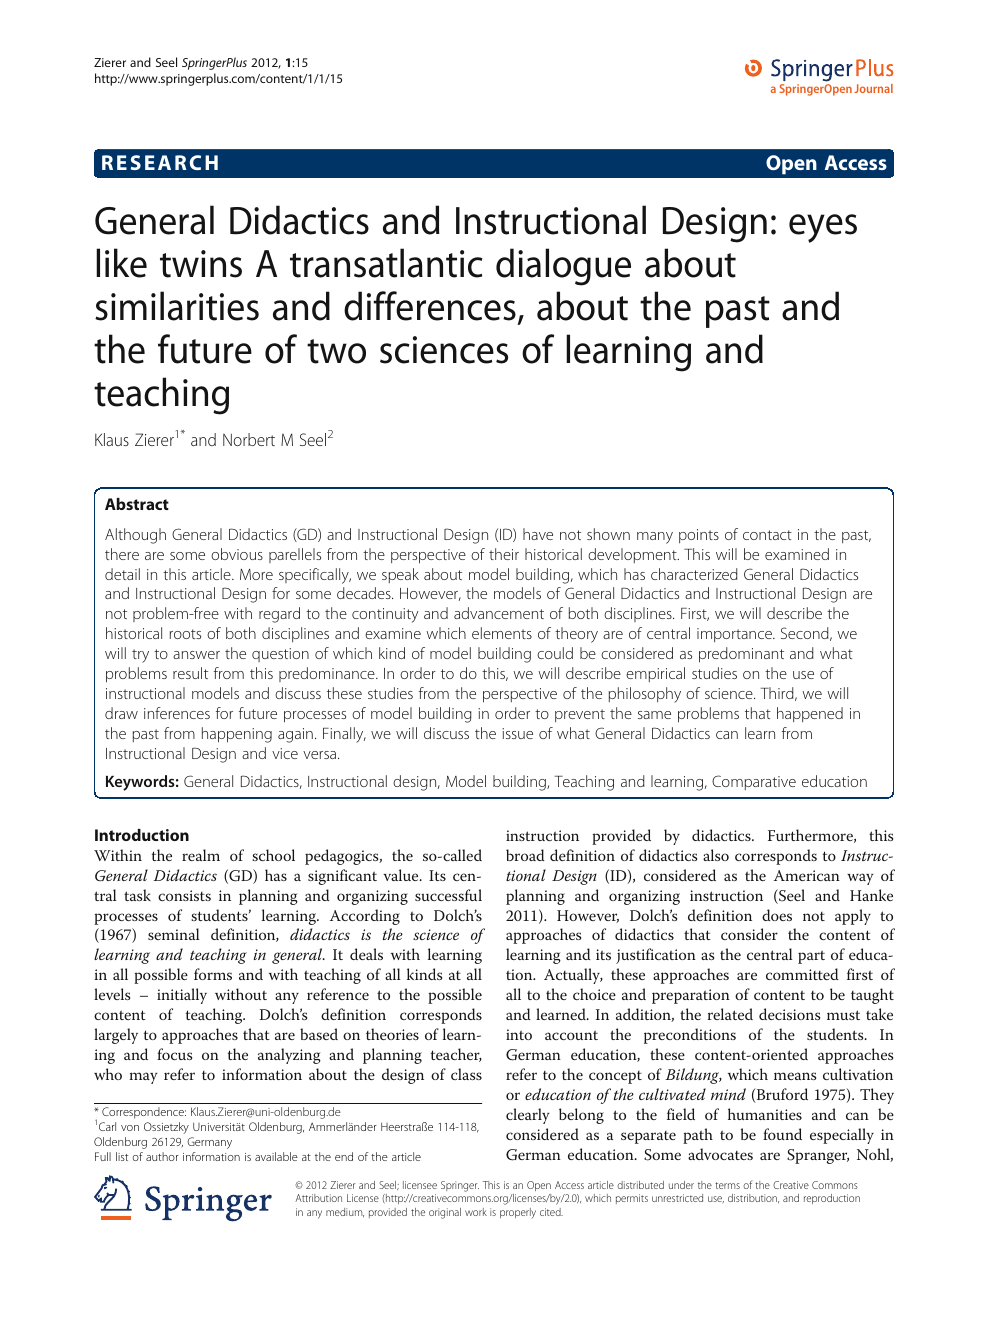 General Didactics And Instructional Design Eyes Like Twins A Transatlantic Dialogue About Similarities And Differences About The Past And The Future Of Two Sciences Of Learning And Teaching Topic Of Research